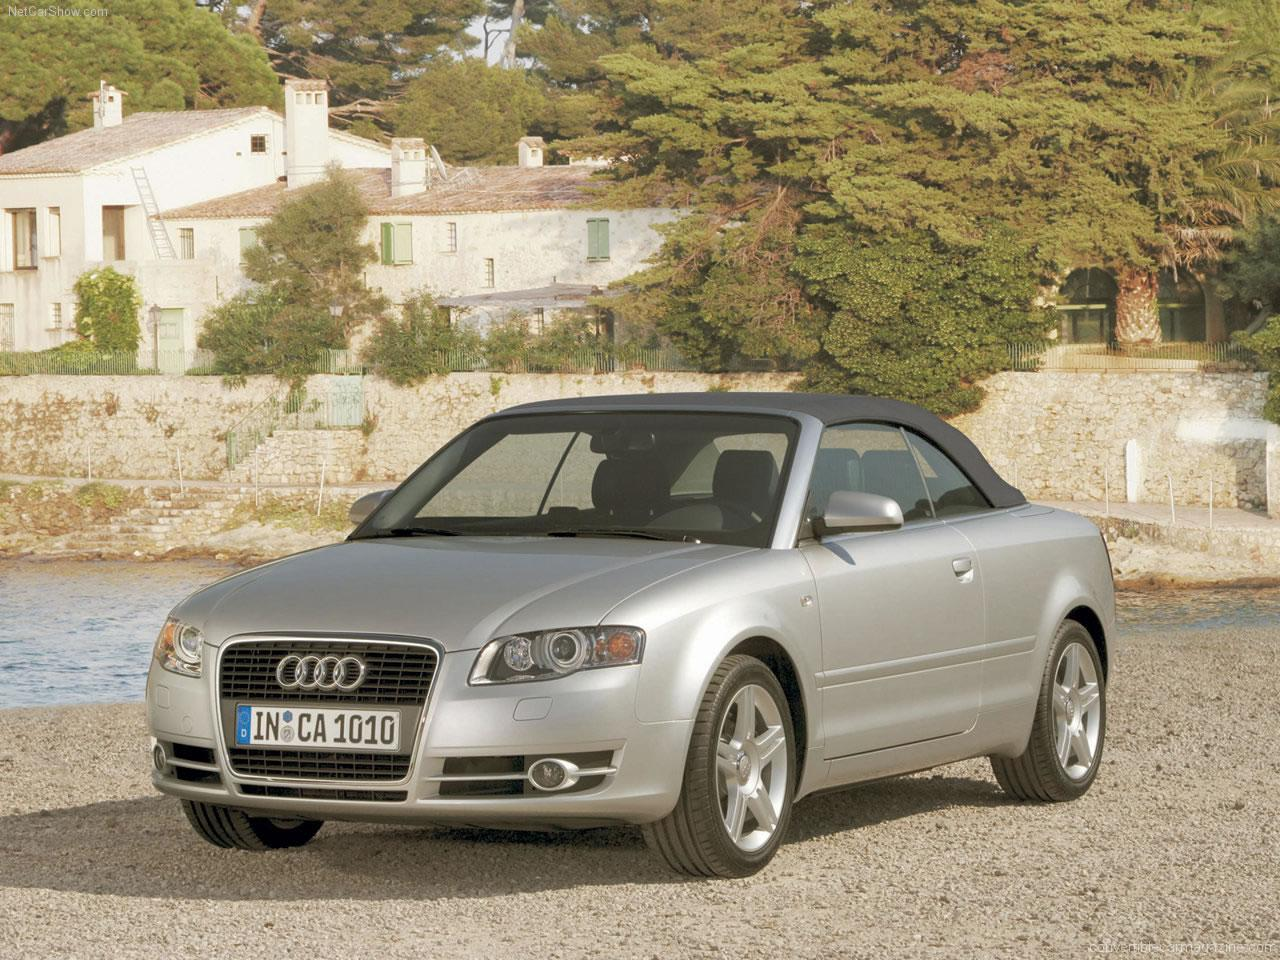 convertibles convertible audi accesskeyid tops disposition alloworigin